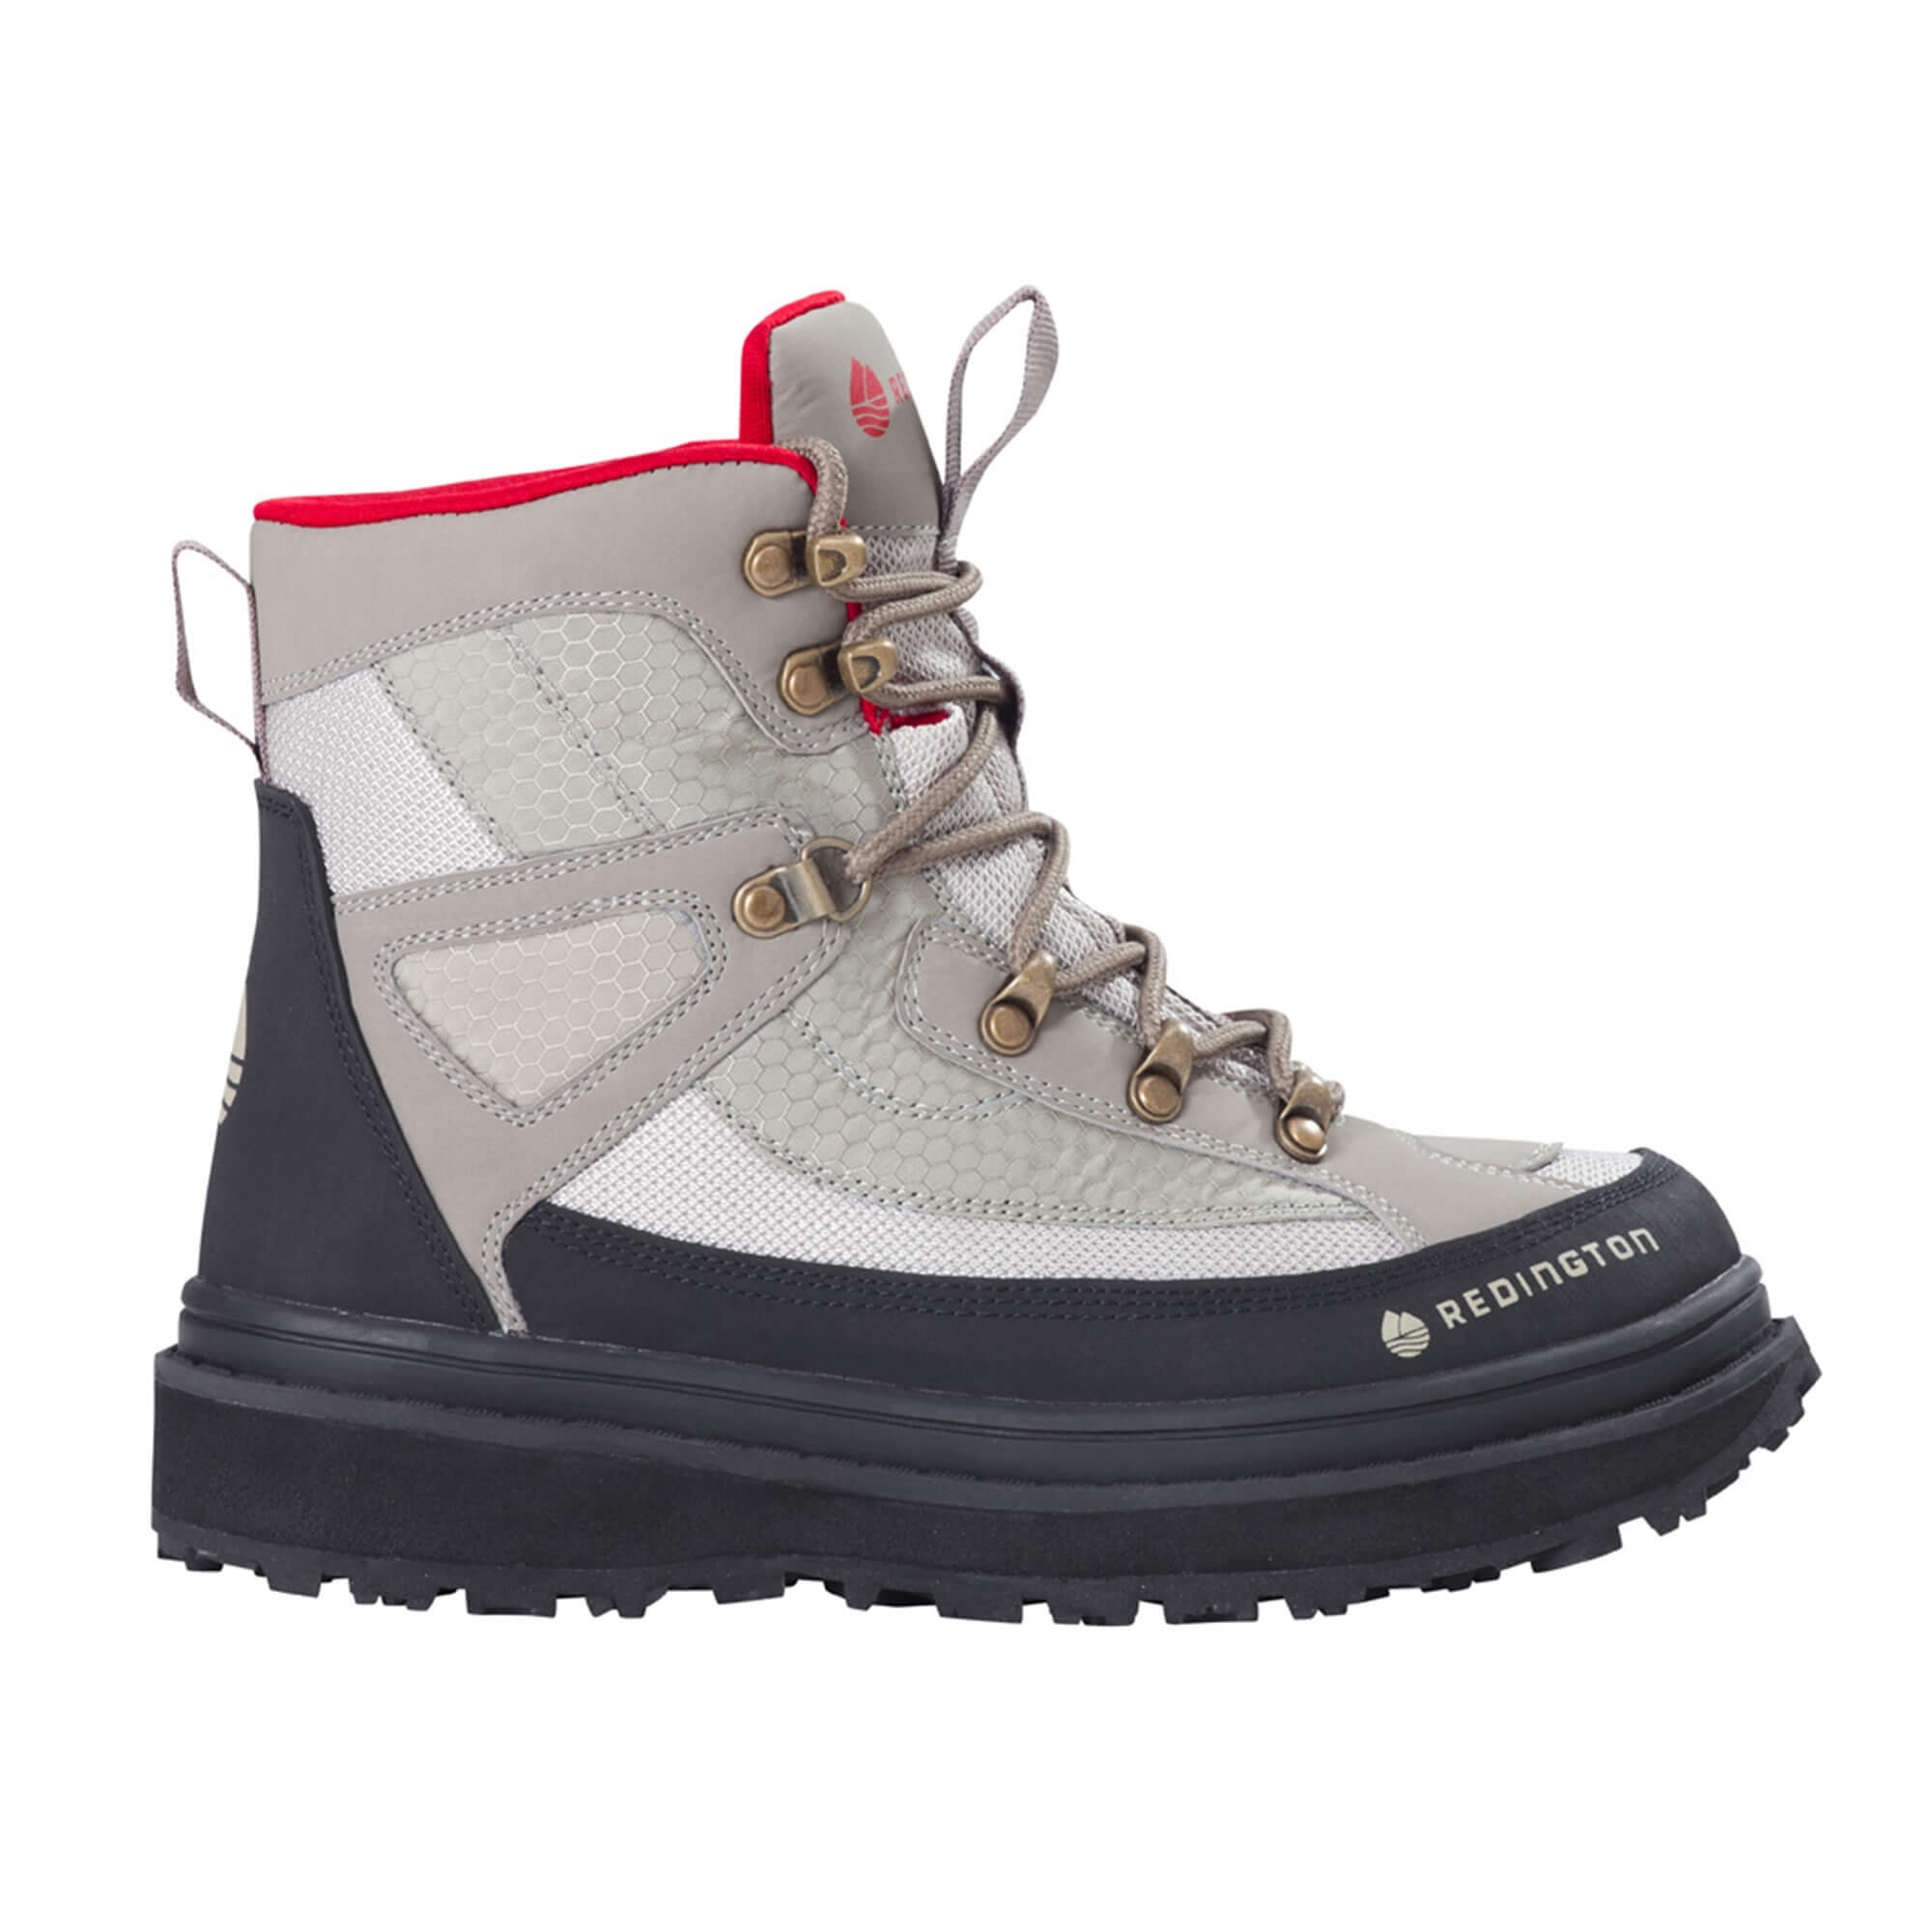 WOMEN'S WILLOW RIVER BOOT Sticky Rubber